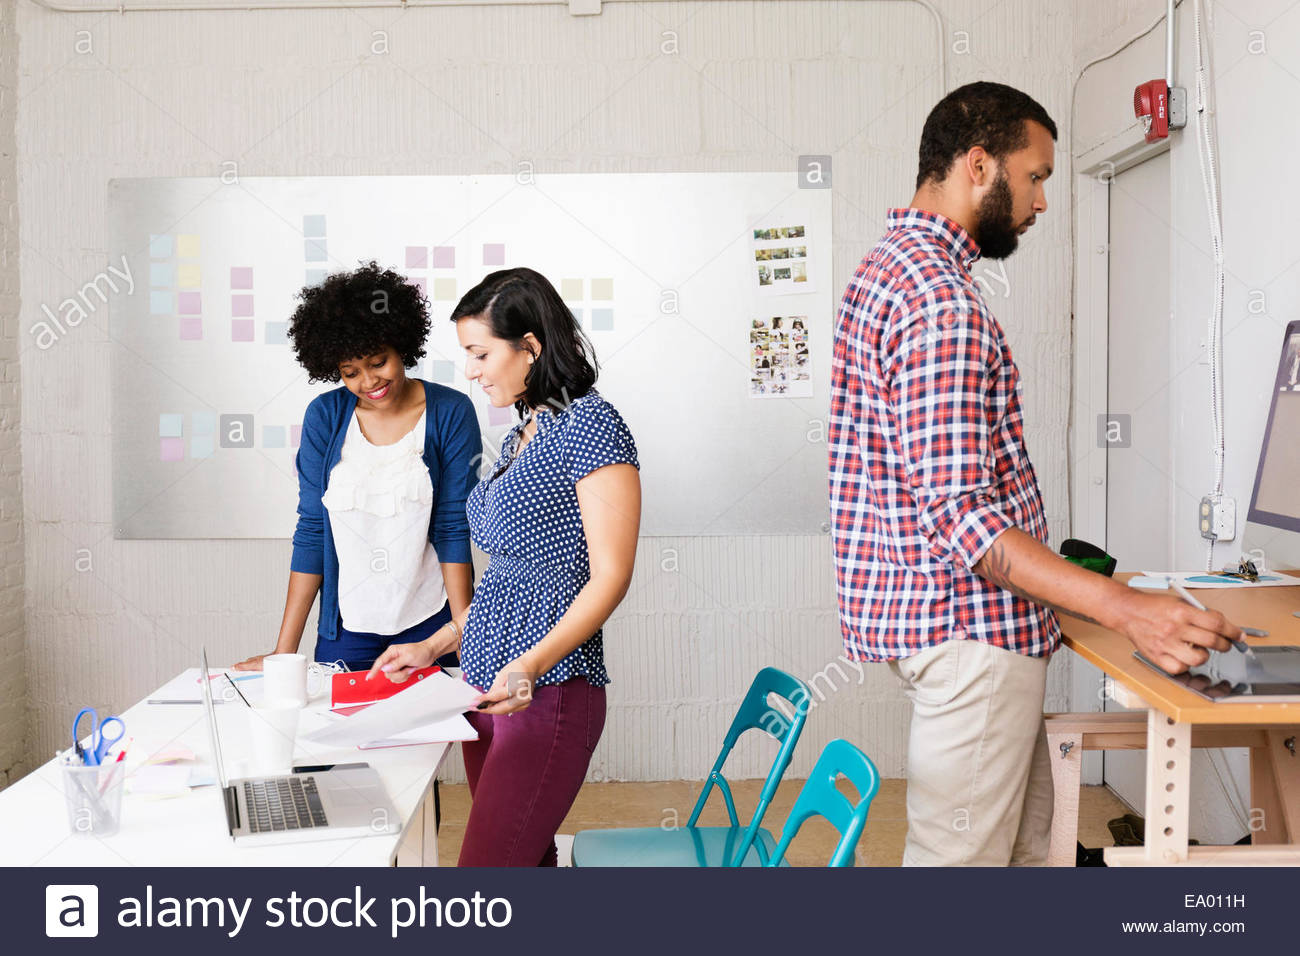 People in office of Small Business, Start-up - Stock Image